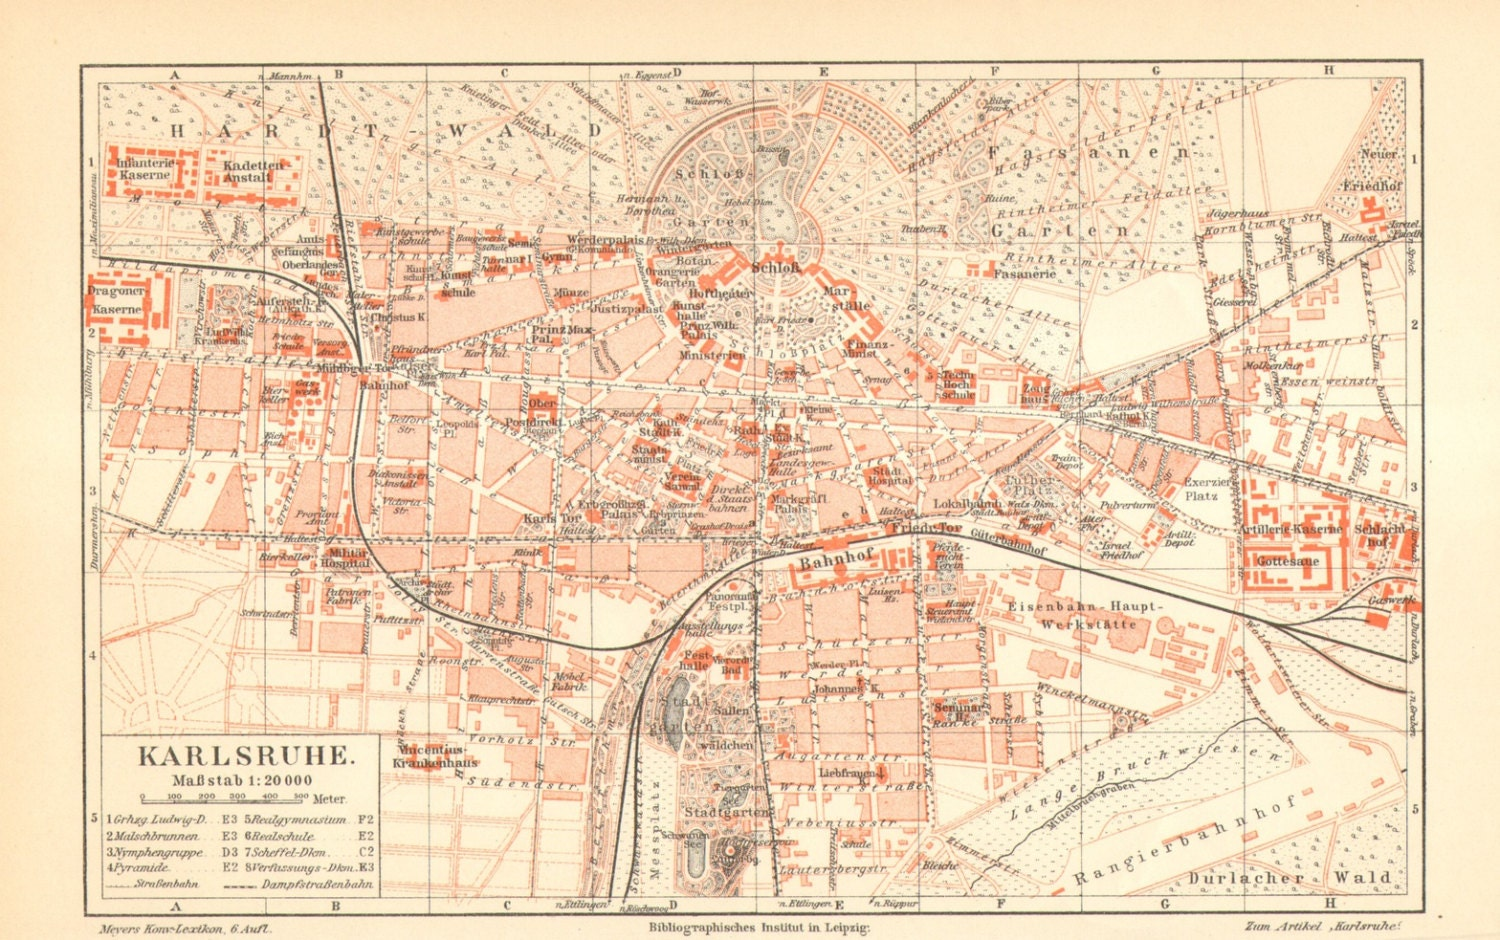 1905 Original Antique City Map of Karlsruhe or Carlsruhe, Baden-Württemberg, on map of rastatt, map of münster, map of monchengladbach, map of saarland, map of basel, map of osterholz-scharmbeck, map of nurtingen, map of nordlingen, map of marburg, map of herzogenaurach, map of porto, map of hamm, map of bowbells, map of hindenburg, map of schwaben, map of bruchsal, map of oberpfalz, map of remagen, map of holzkirchen, map of cochem,